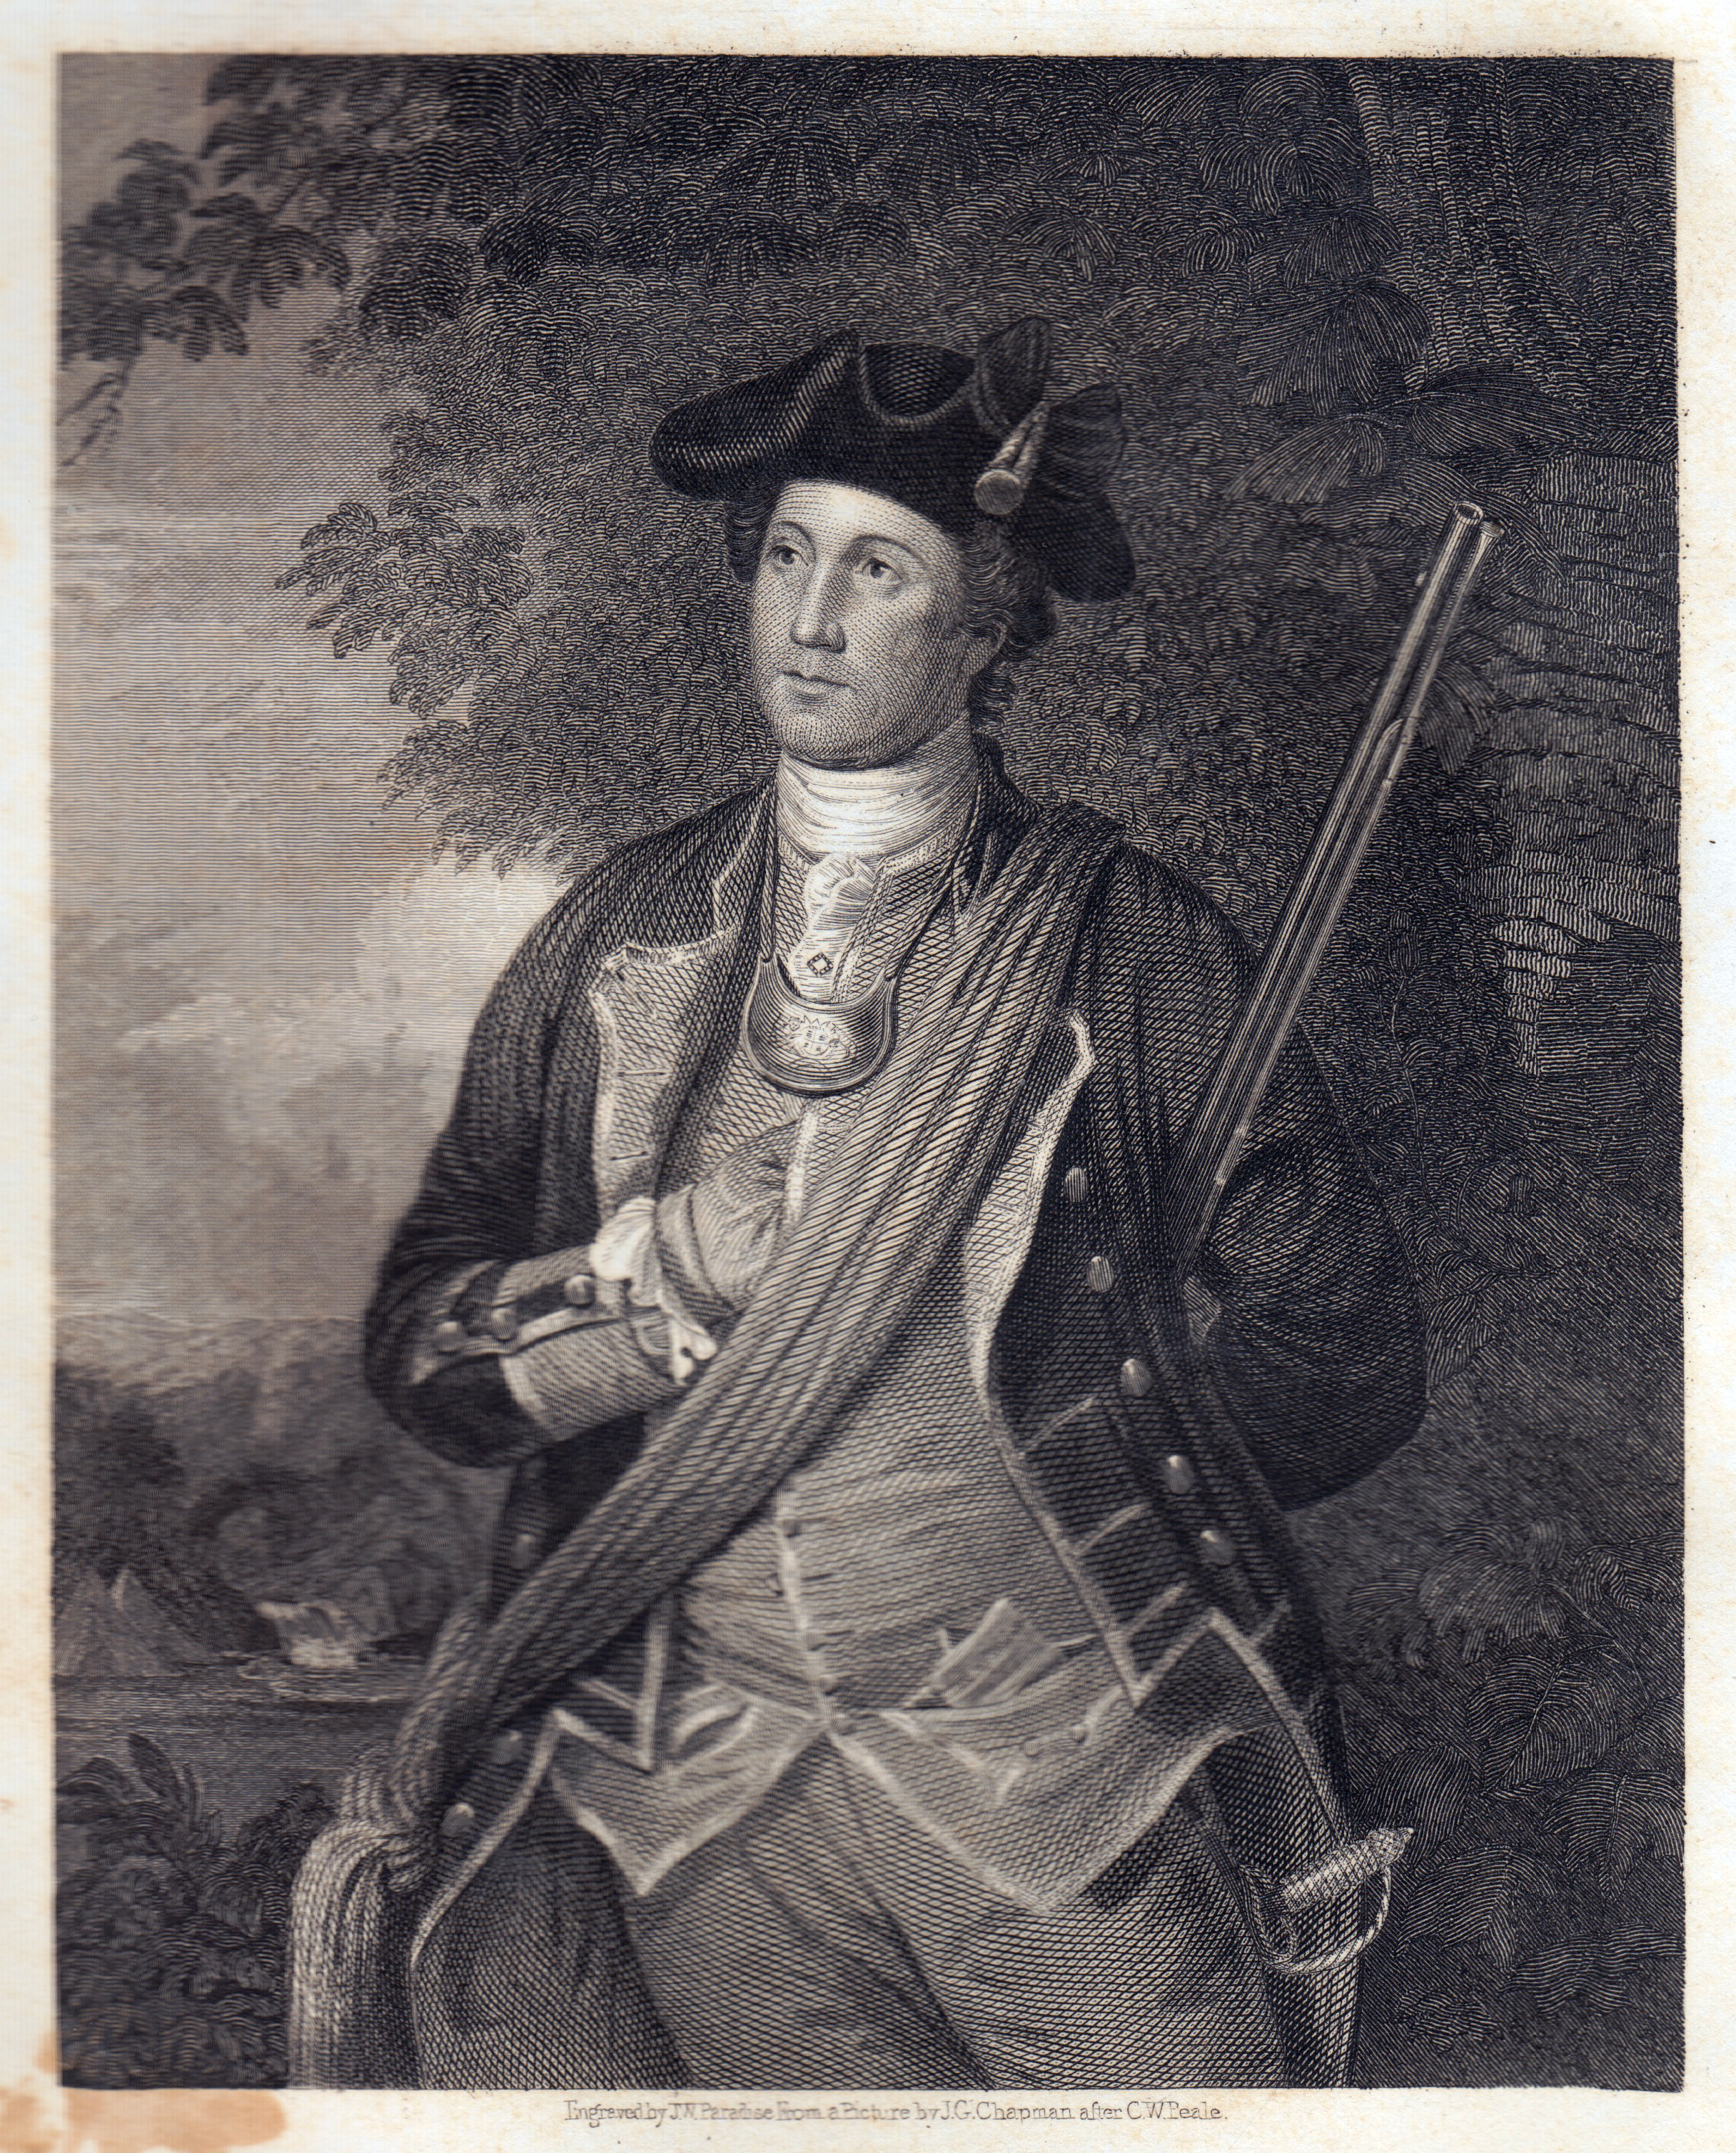 File:George Washington in 1772 at age 40.jpg